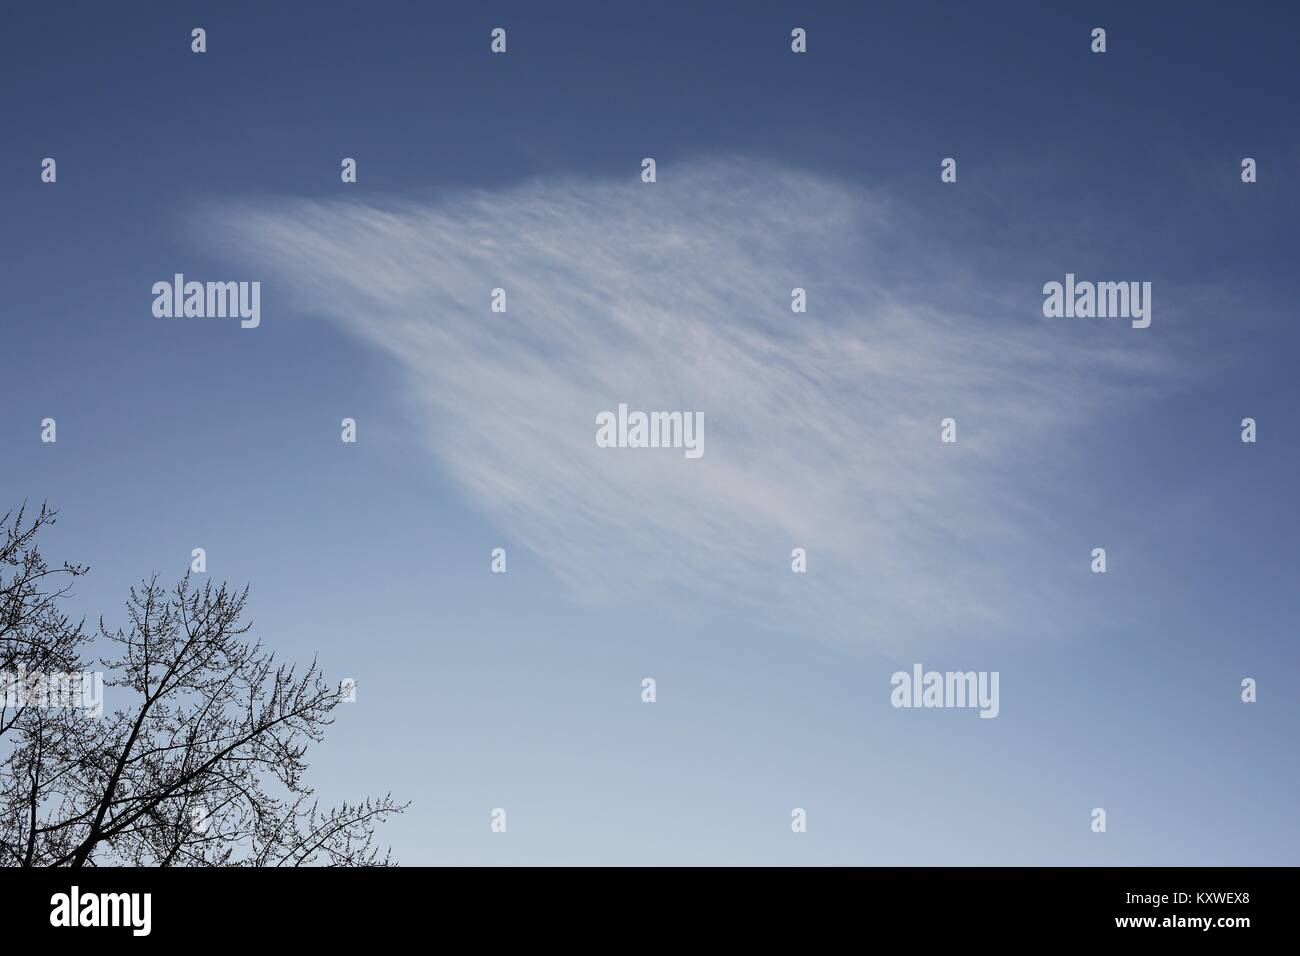 A wing shaped wispy cloud over a bare tree. - Stock Image